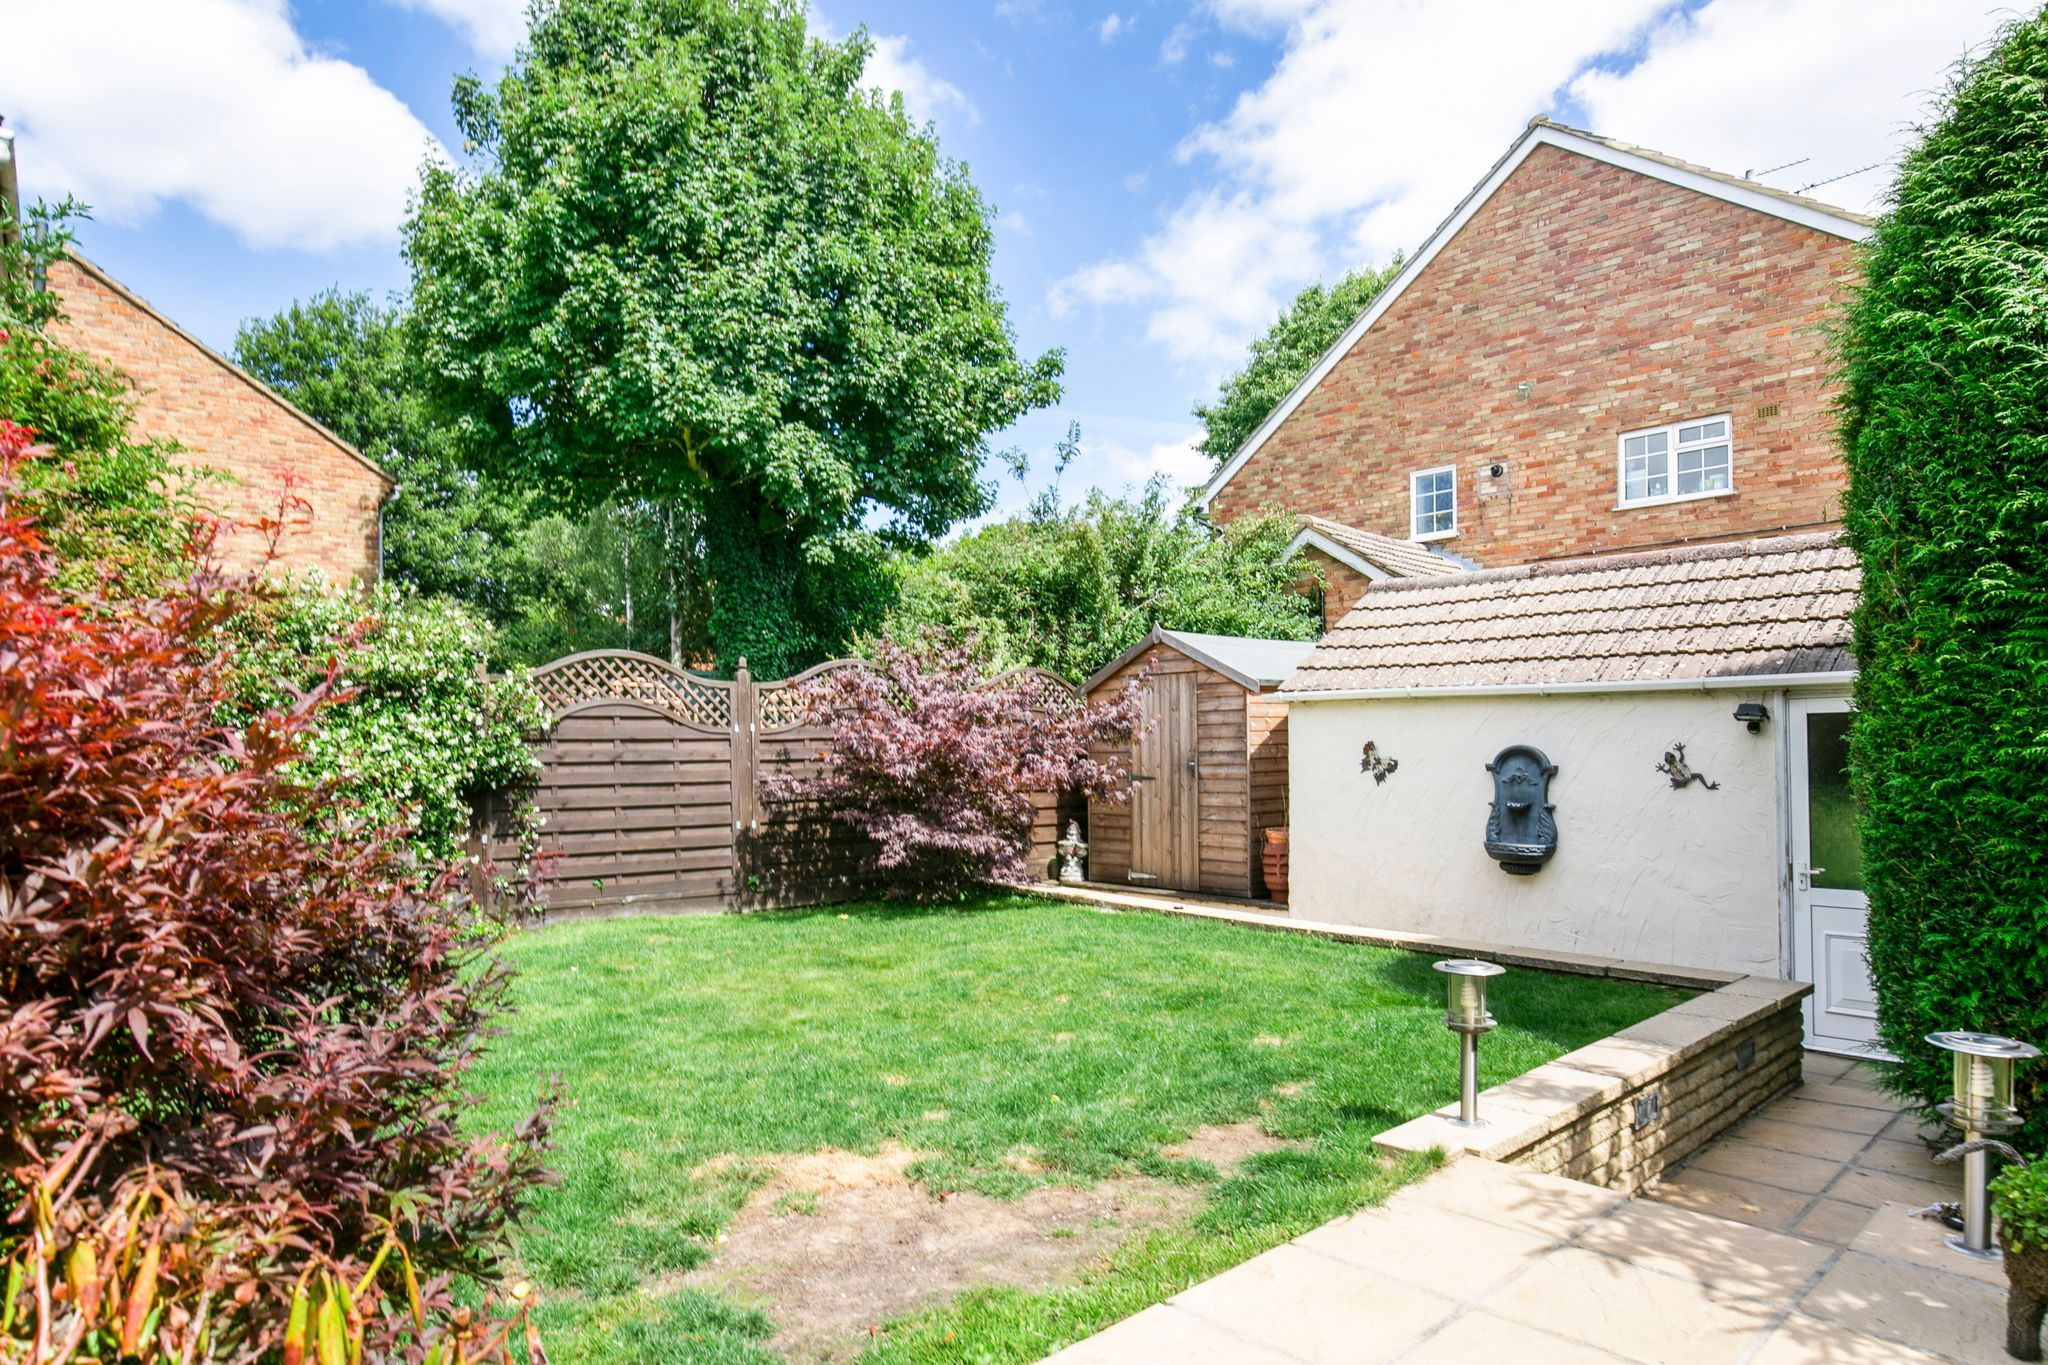 4 bedroom detached house For Sale in Potters Bar - Photograph 18